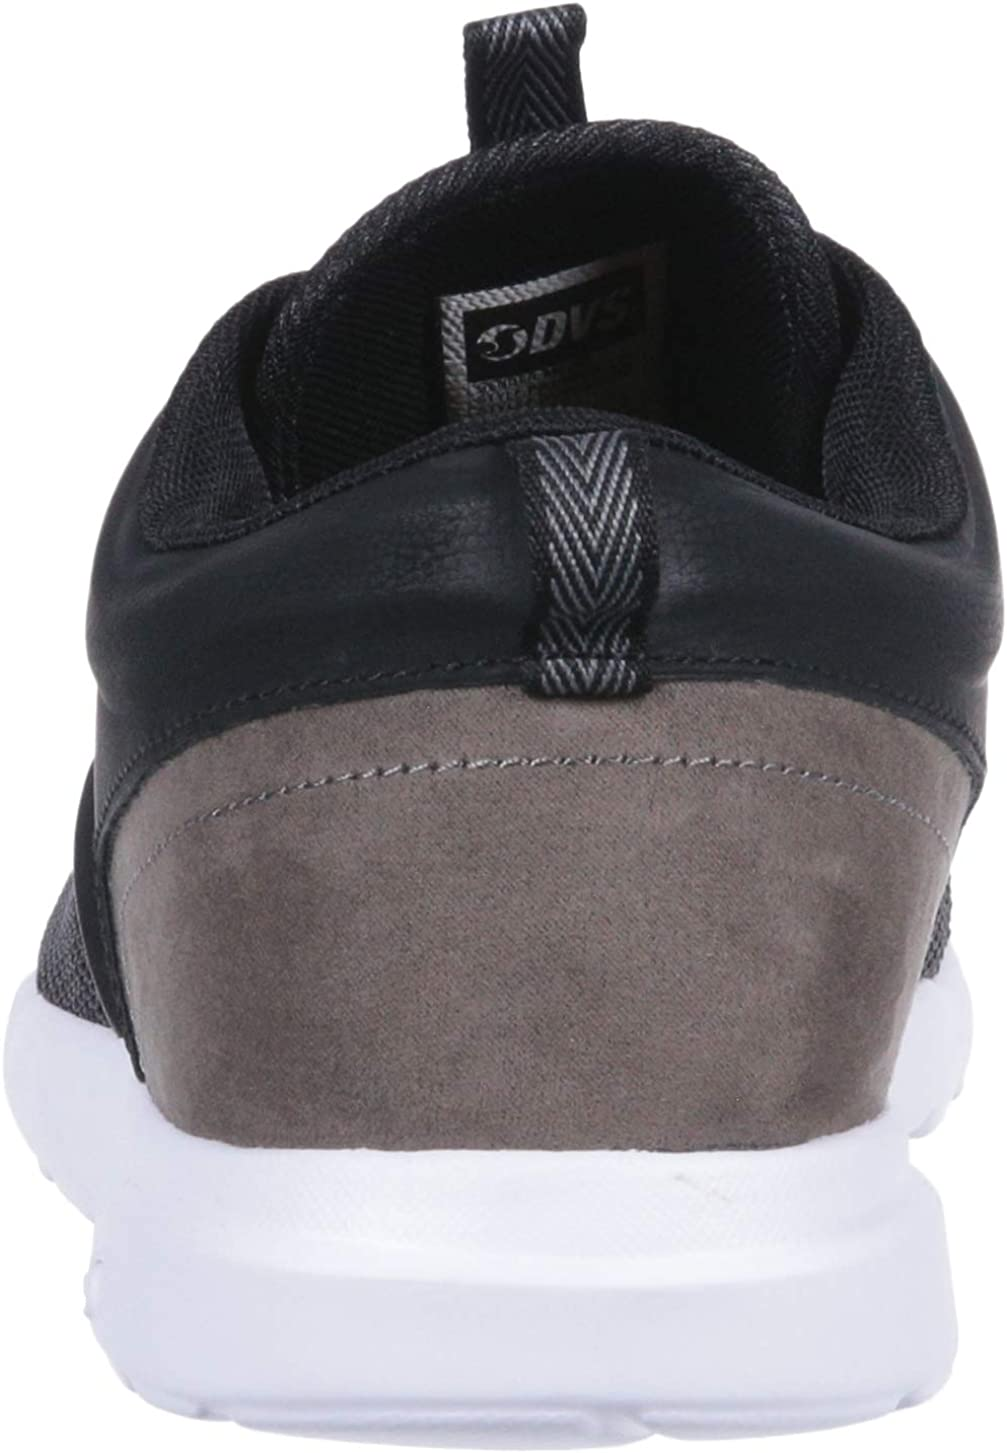 DVS Men's Premier 2.0+ Skate Shoe Black Knit Olive Gold